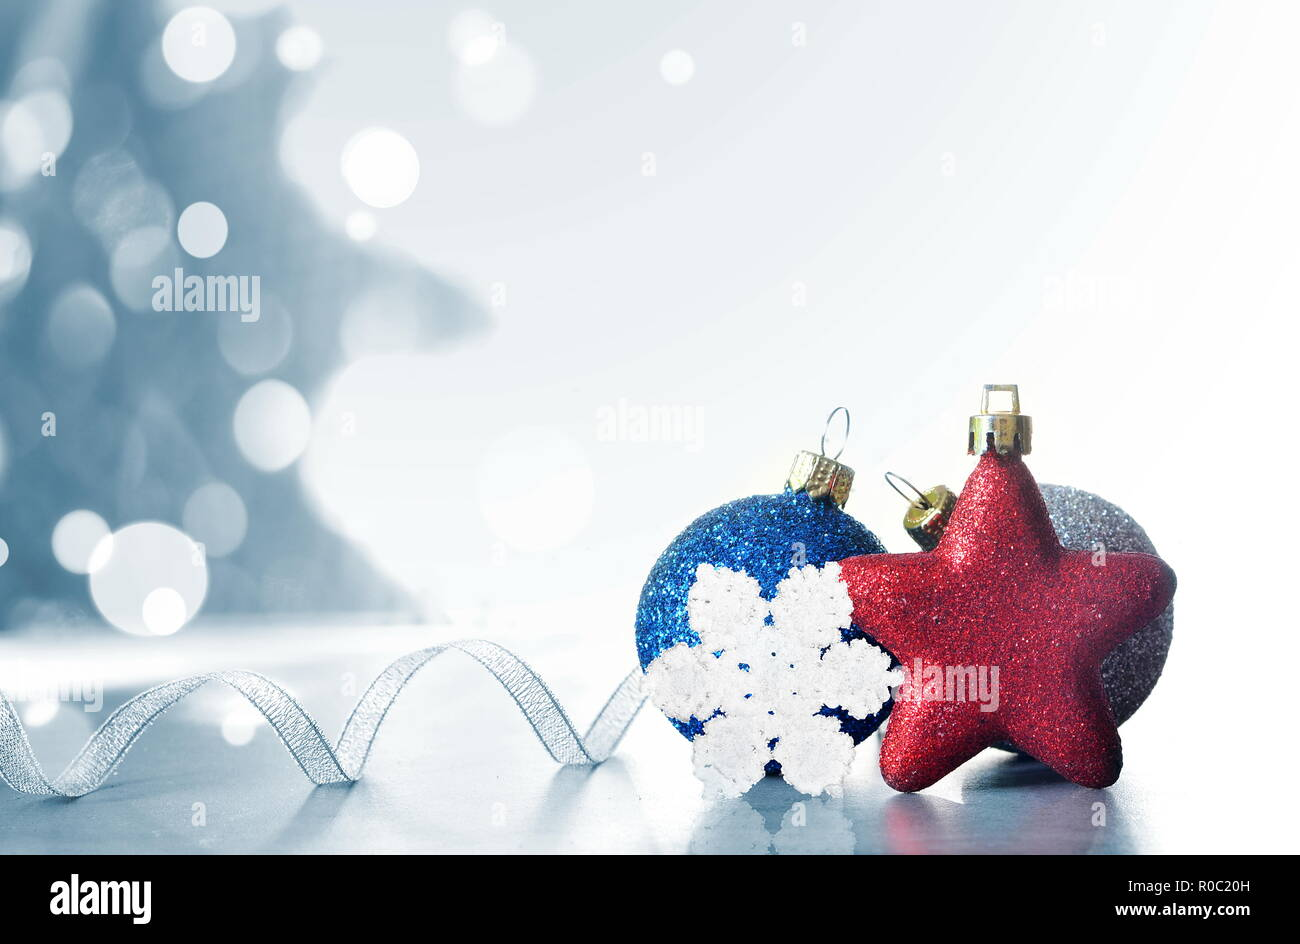 Christmas Holiday Background.Christmas Holiday Background Decorated With Baubles Light